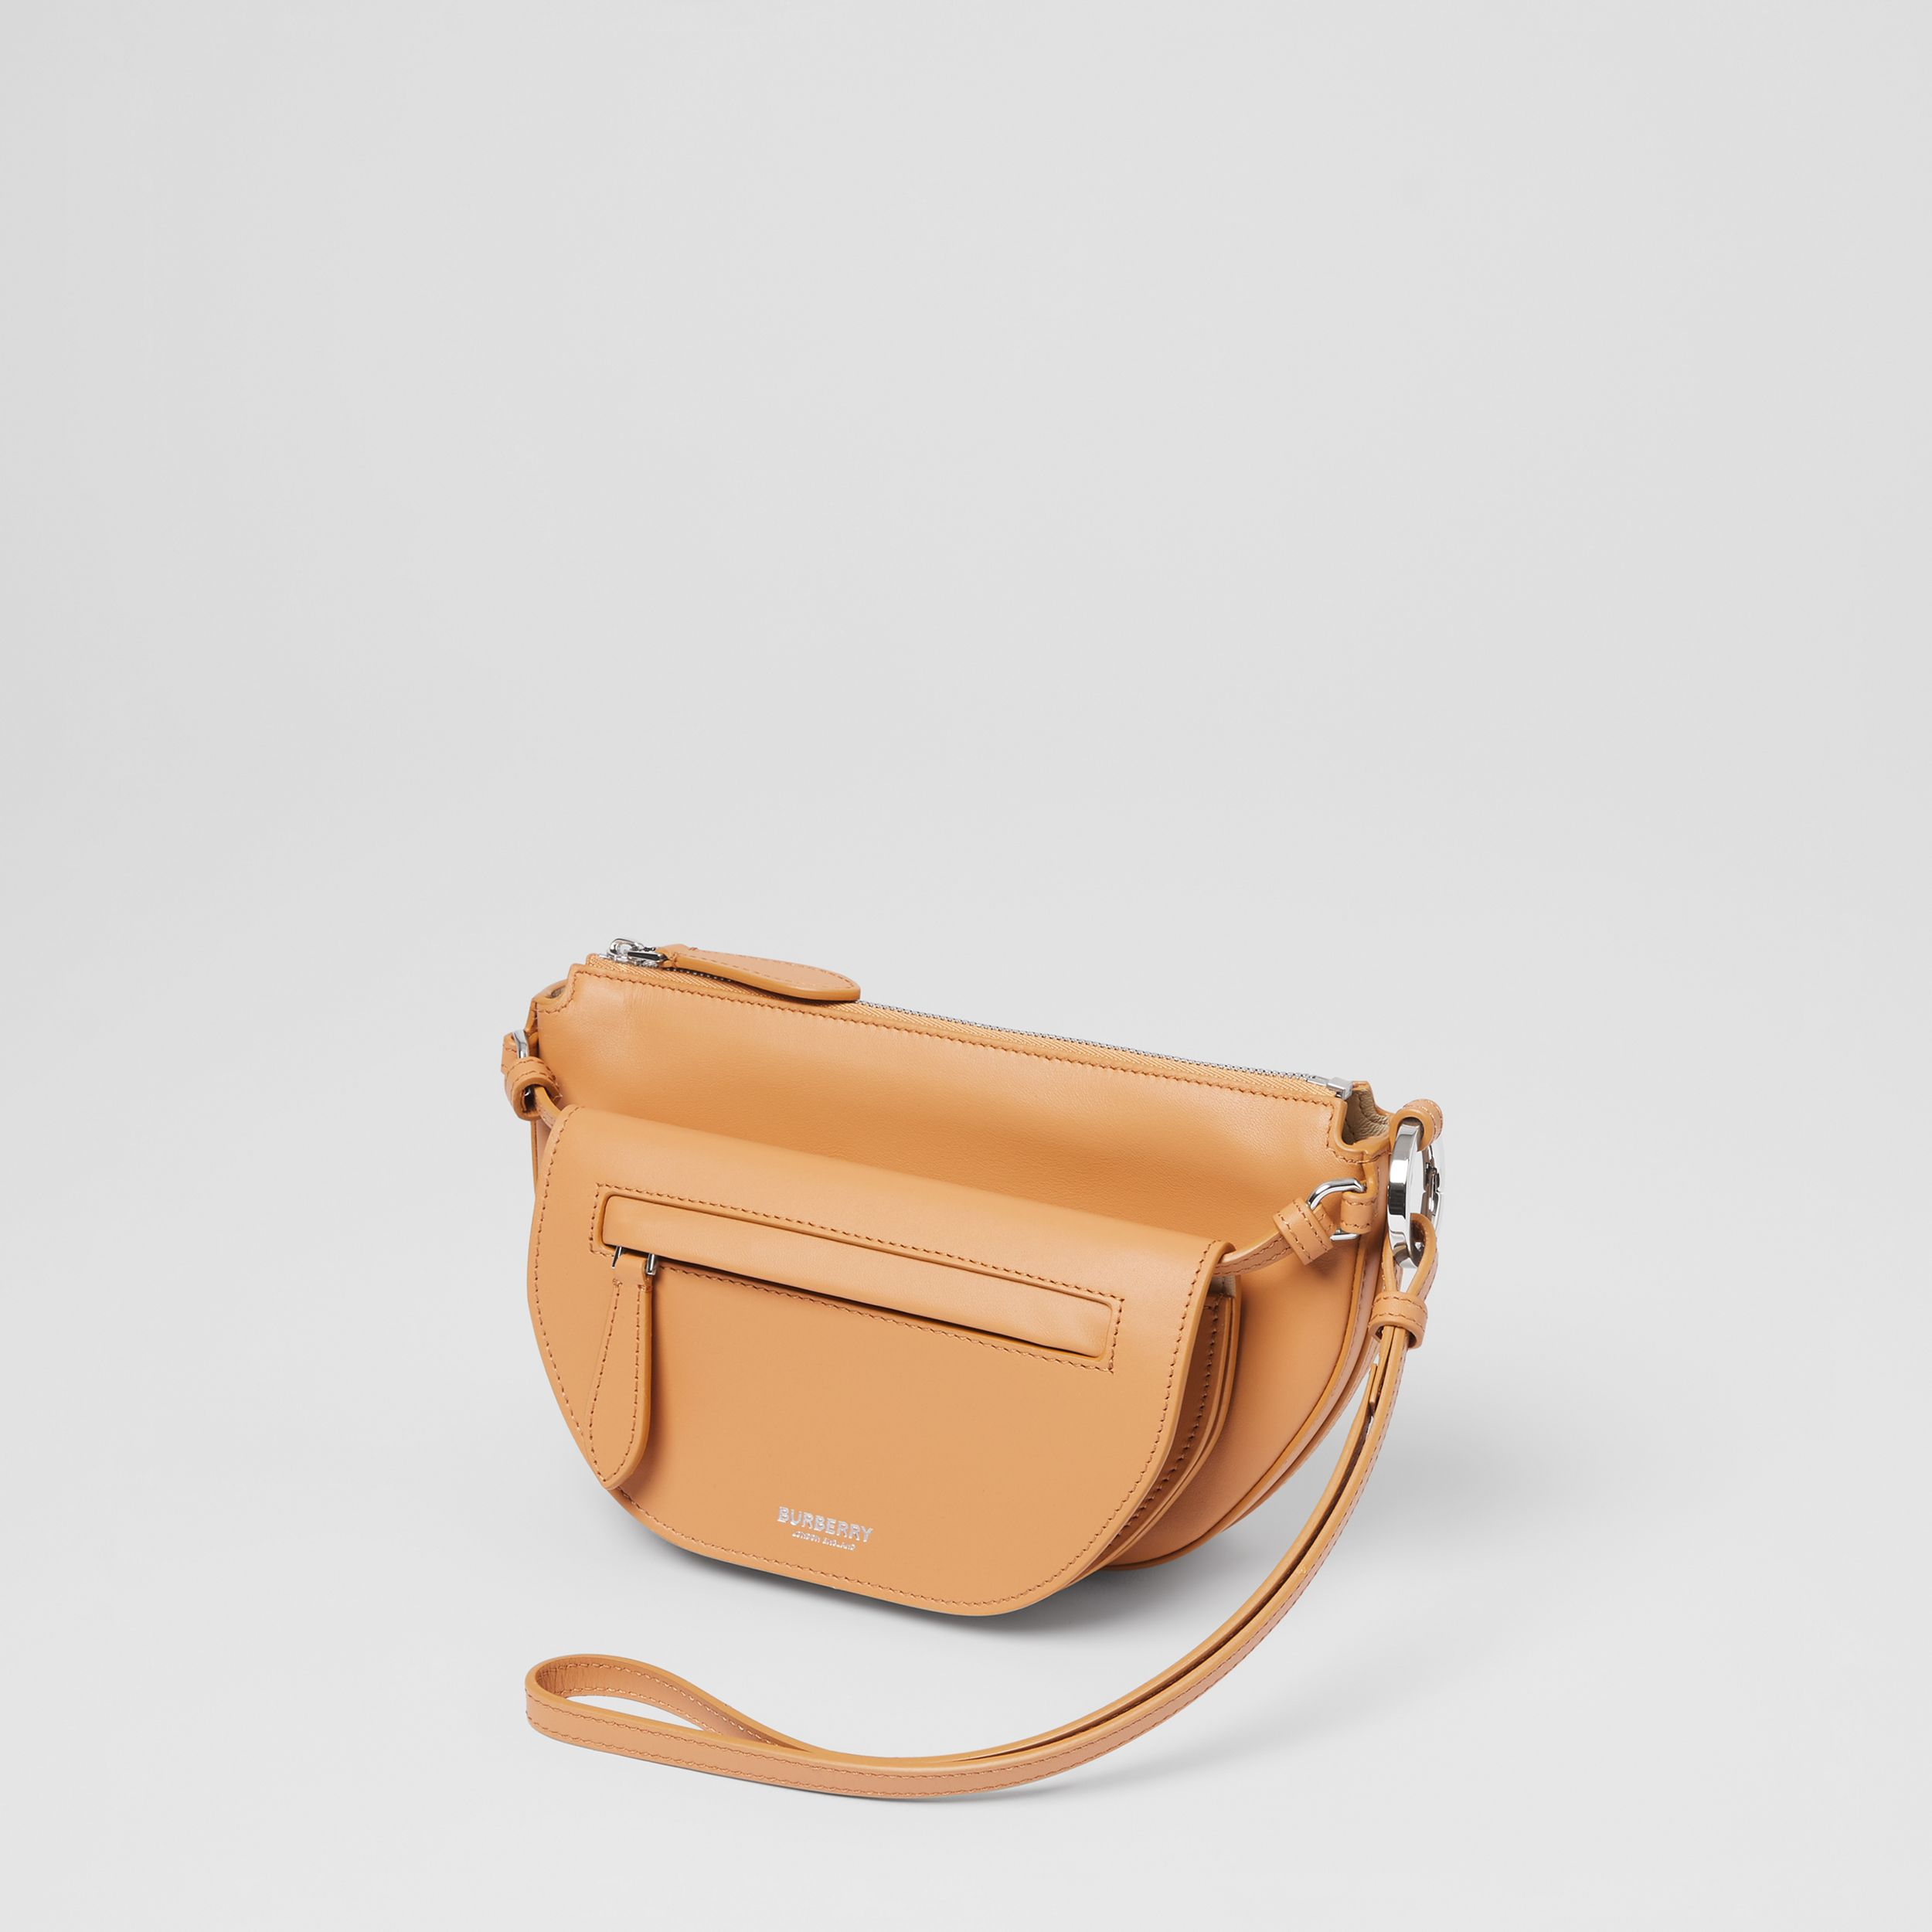 Mini Leather Double Olympia Bag in Warm Sand - Women | Burberry - 3